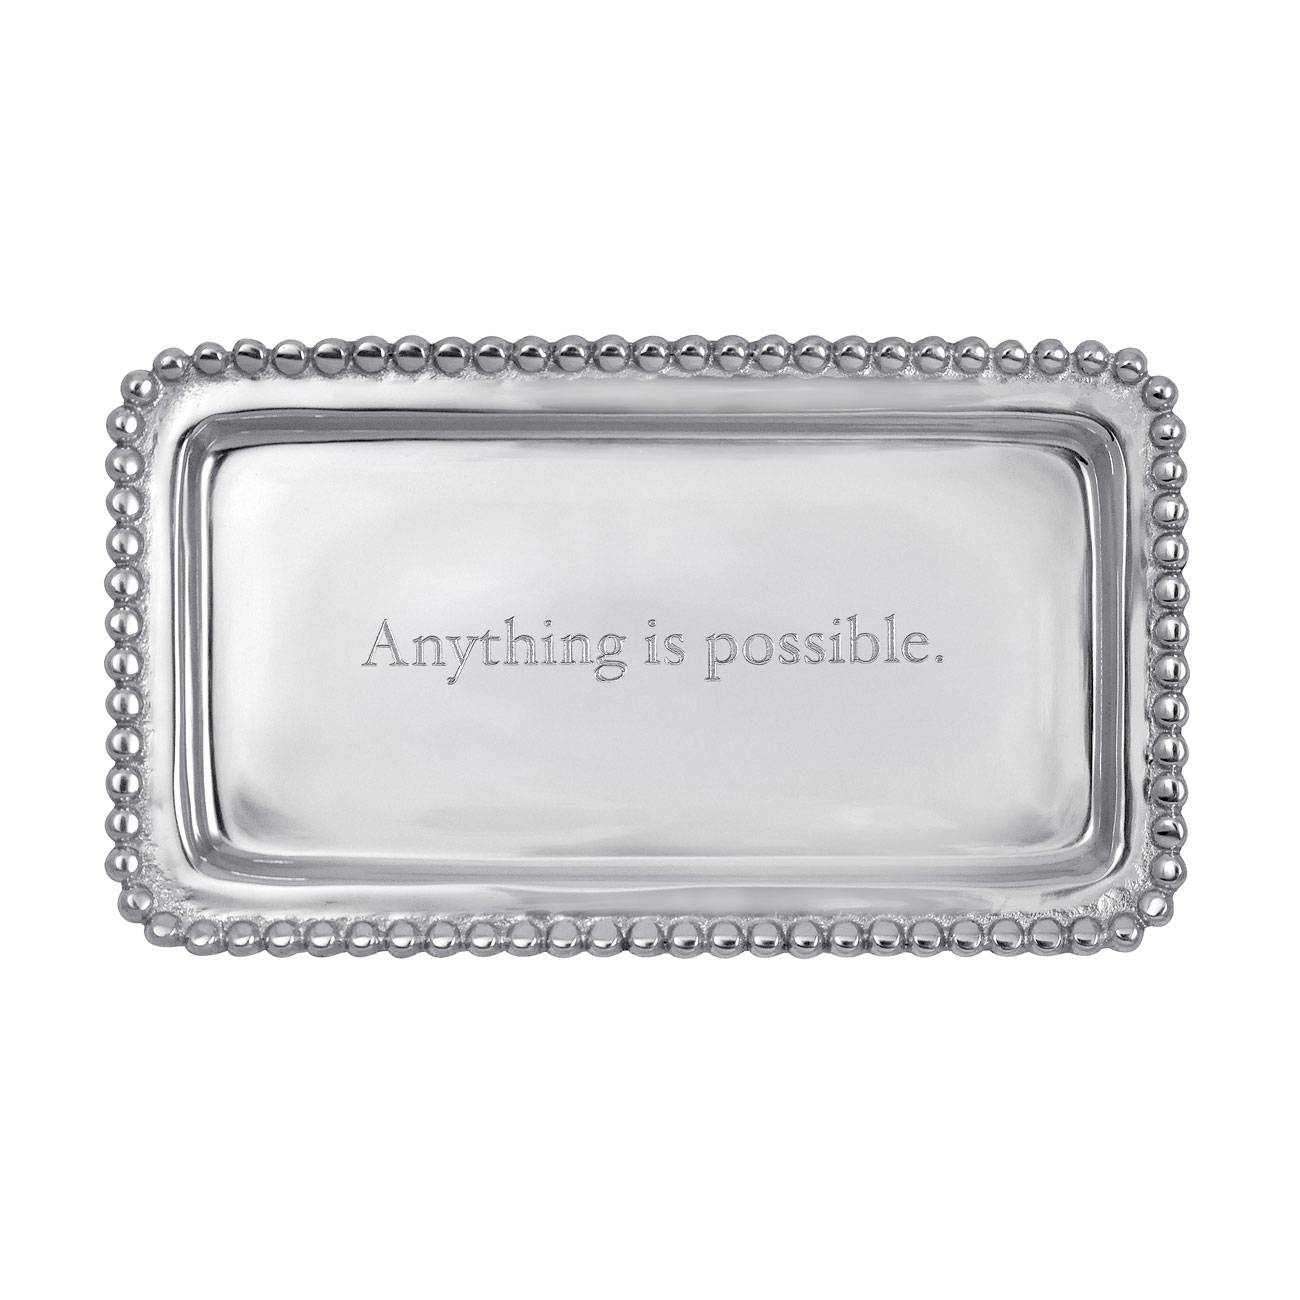 Mariposa Engraved Statements Anything Is Possible Statement Tray  sc 1 st  Michael C. Fina & Mariposa Engraved Statements \